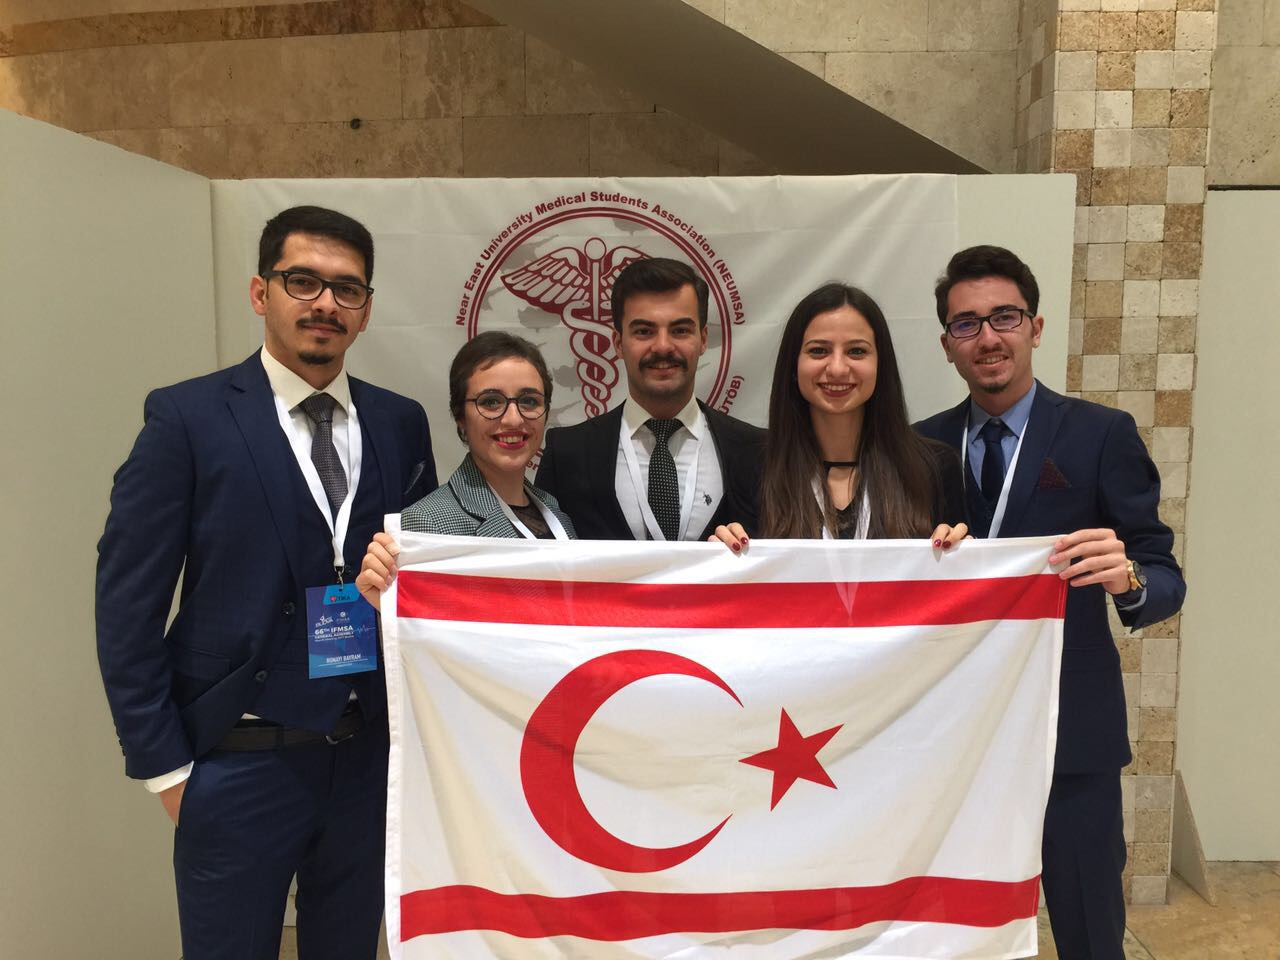 Near East University Medical Students' Association represented our country on an International Platform